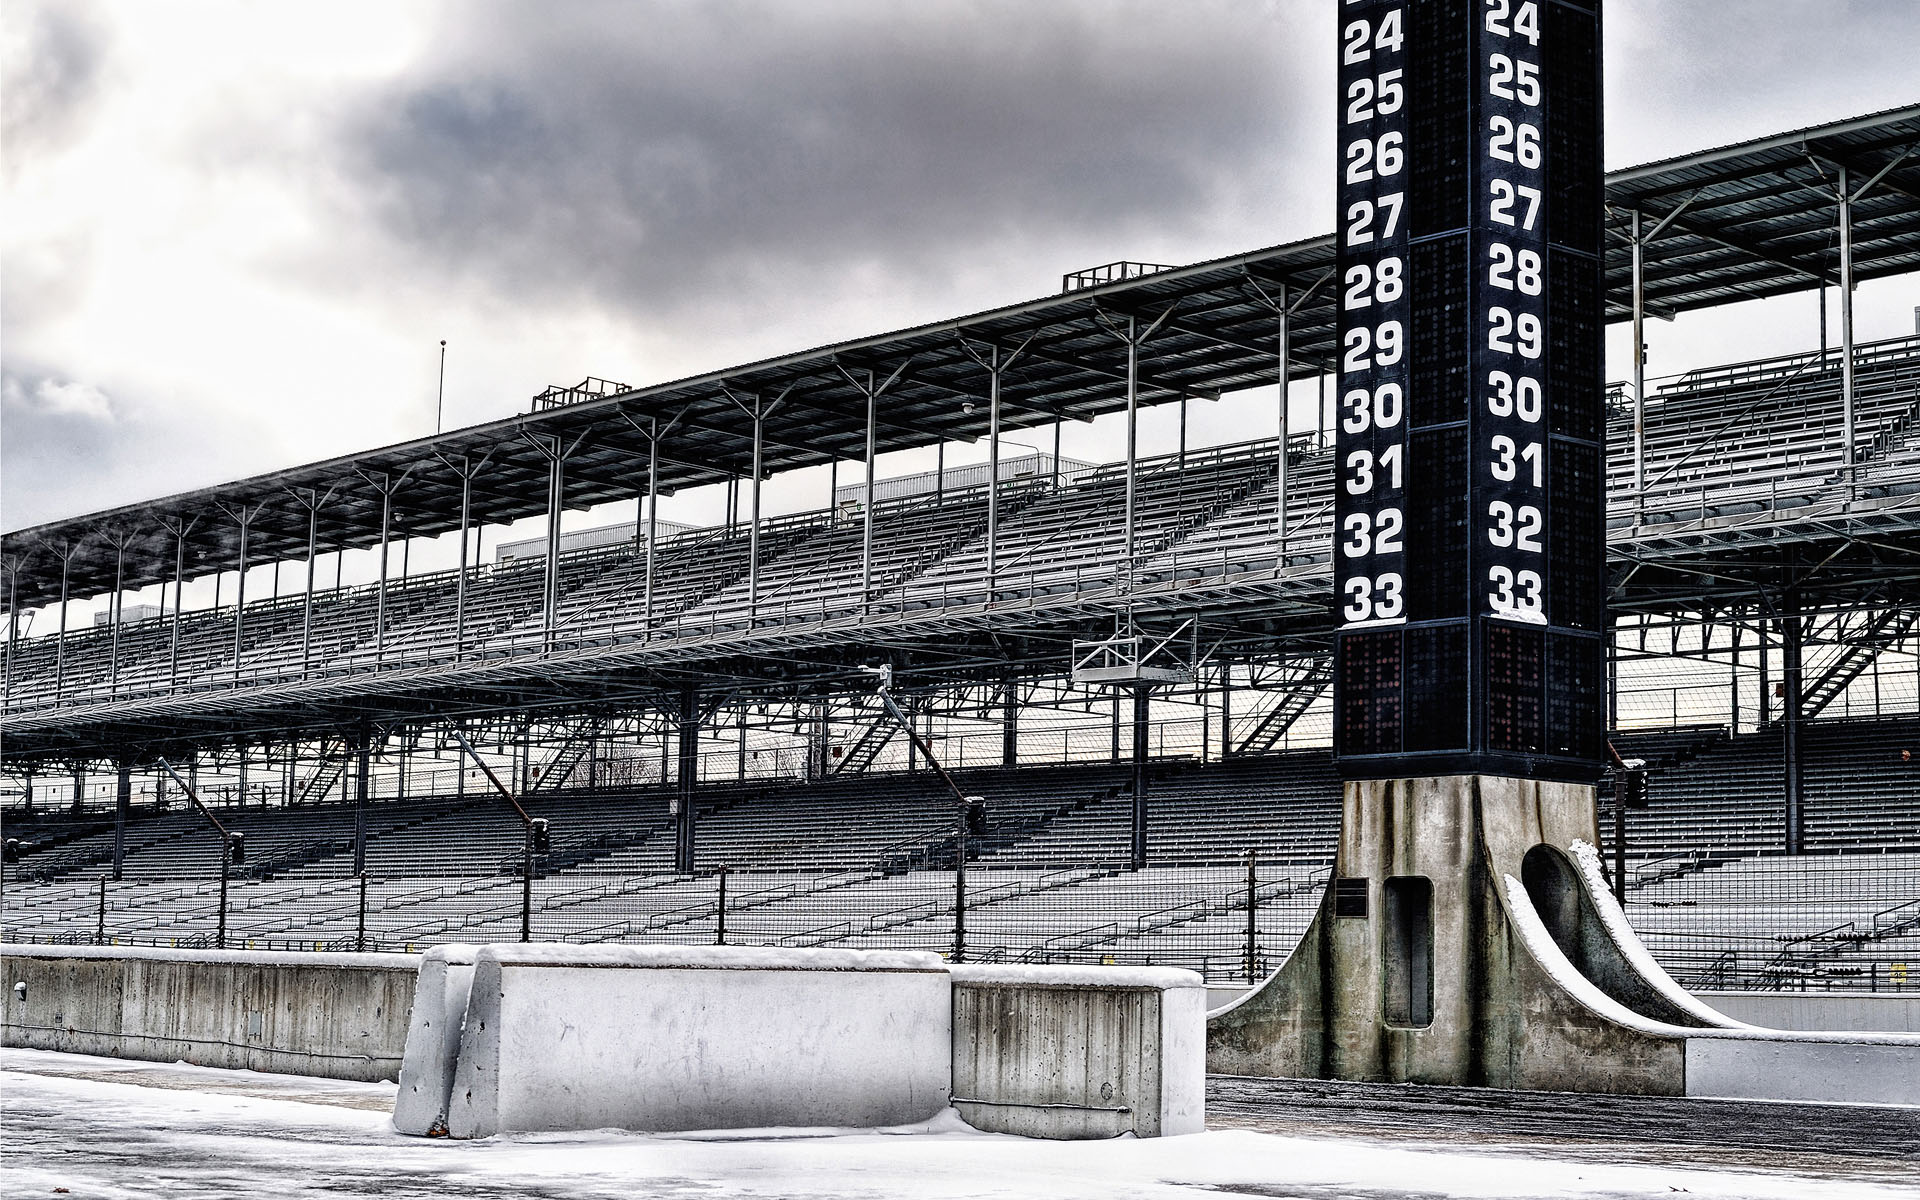 Indianapolis Motor Speedway on location photoshoot